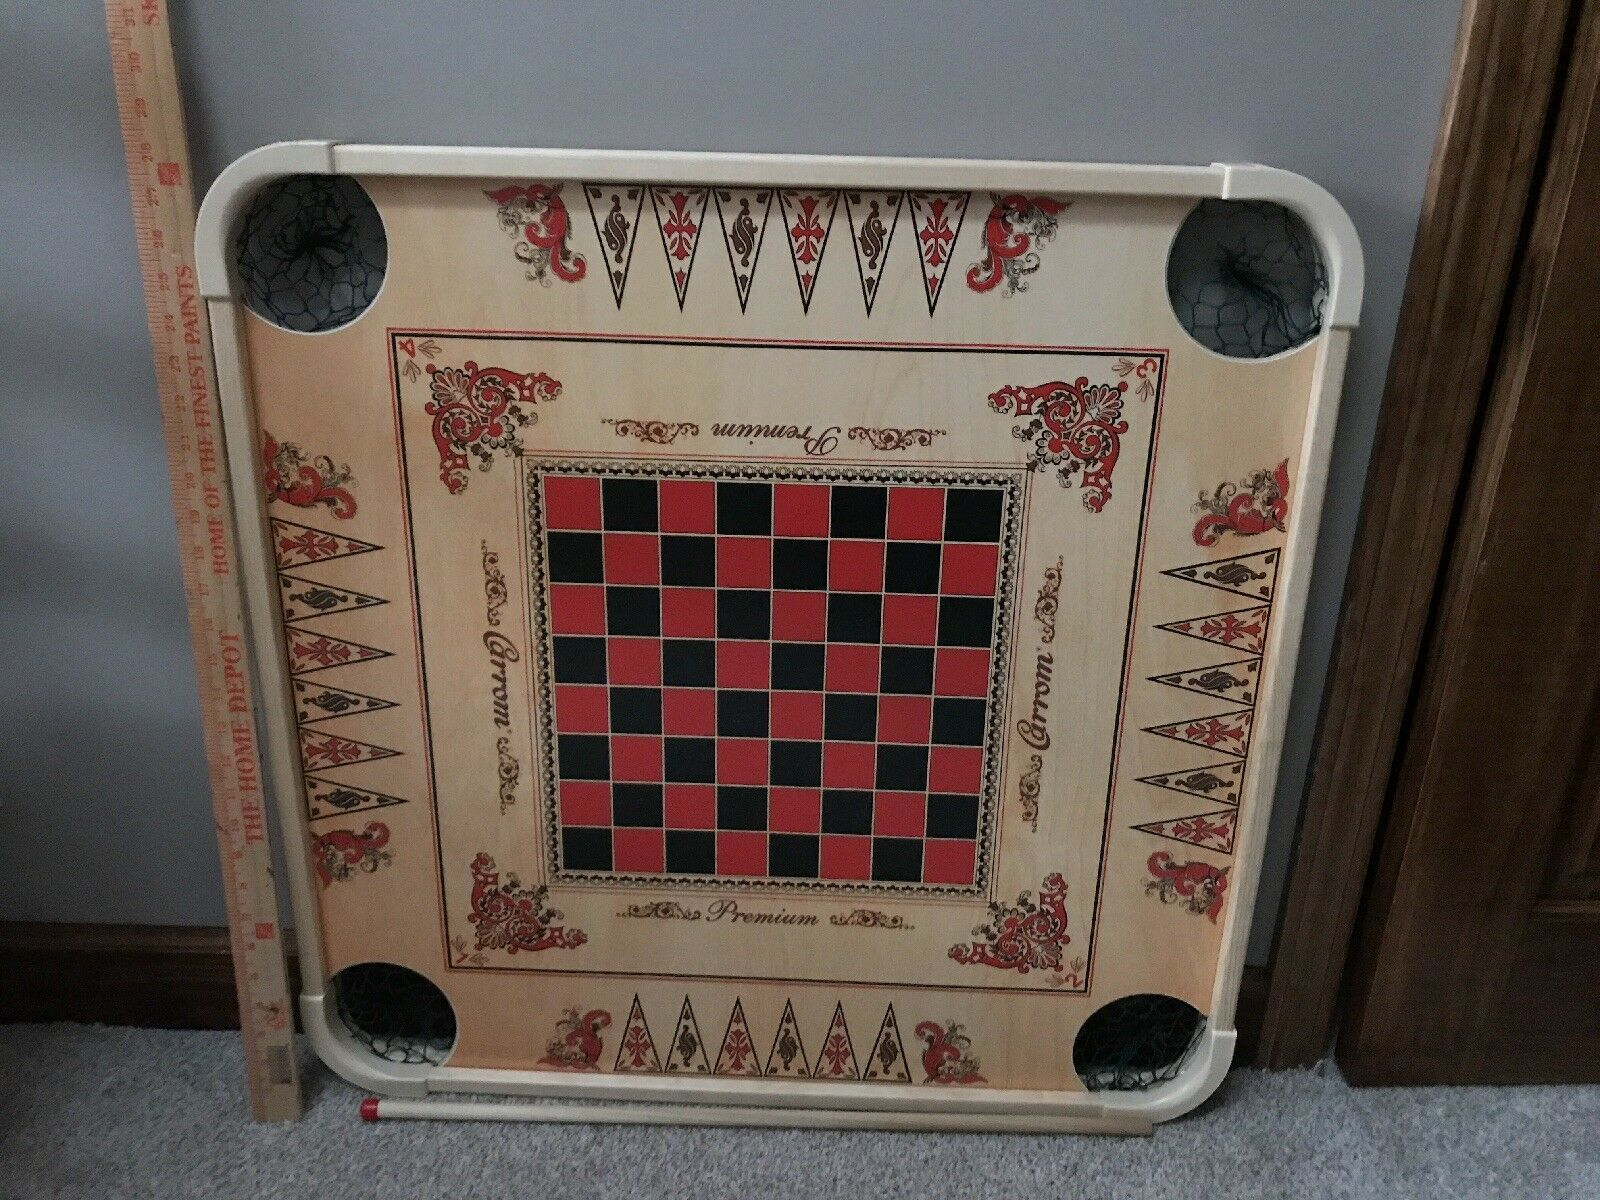 27.5  Large Carrom Wooden Board Game With Coins And Striker